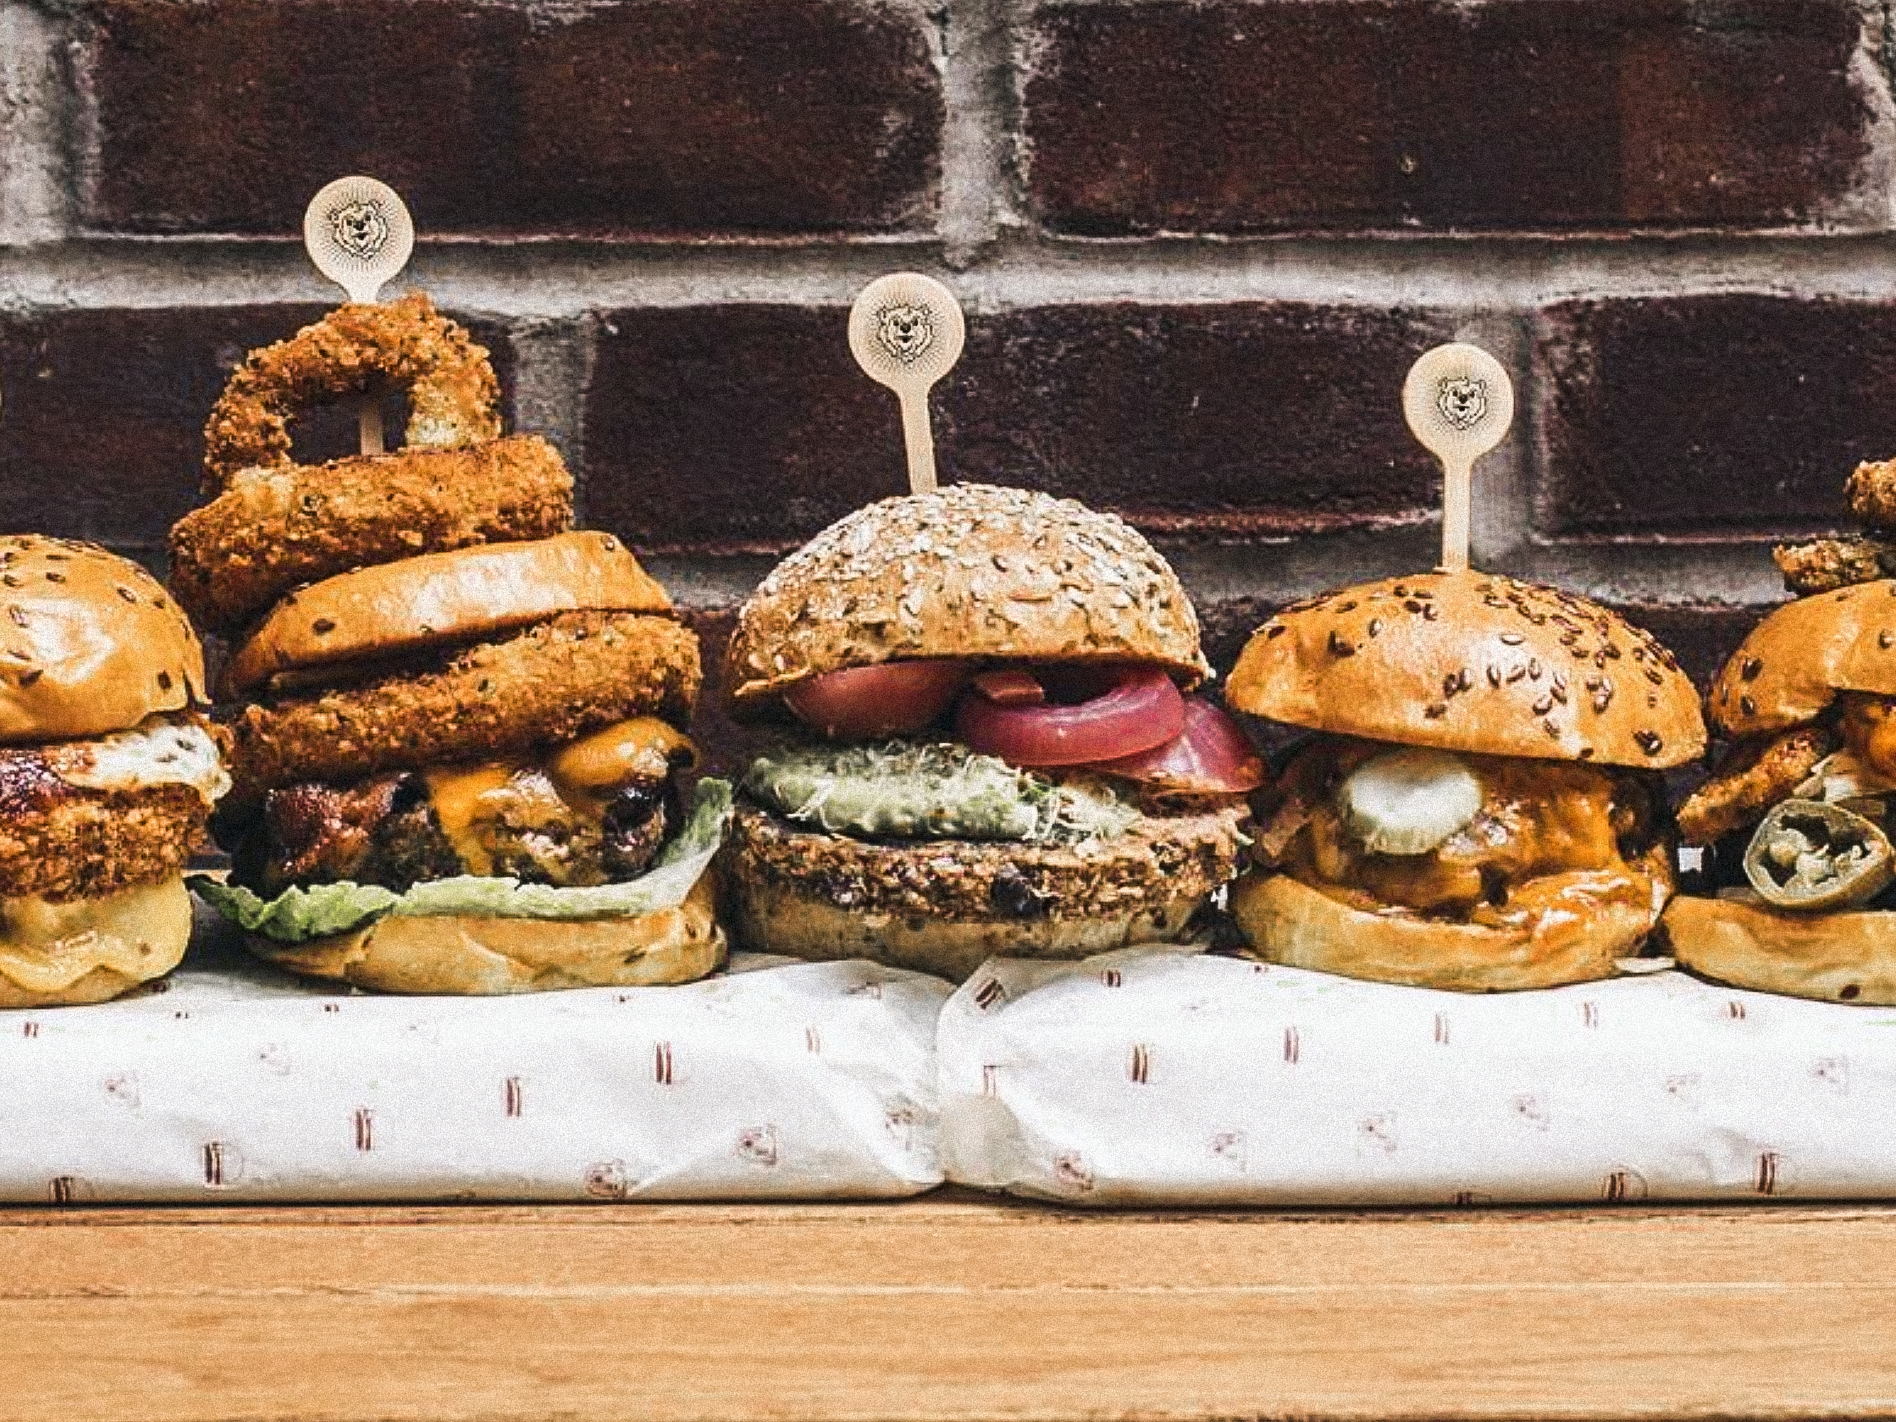 Bareburger Organic - 313 W 57th St, New York, NY 10019